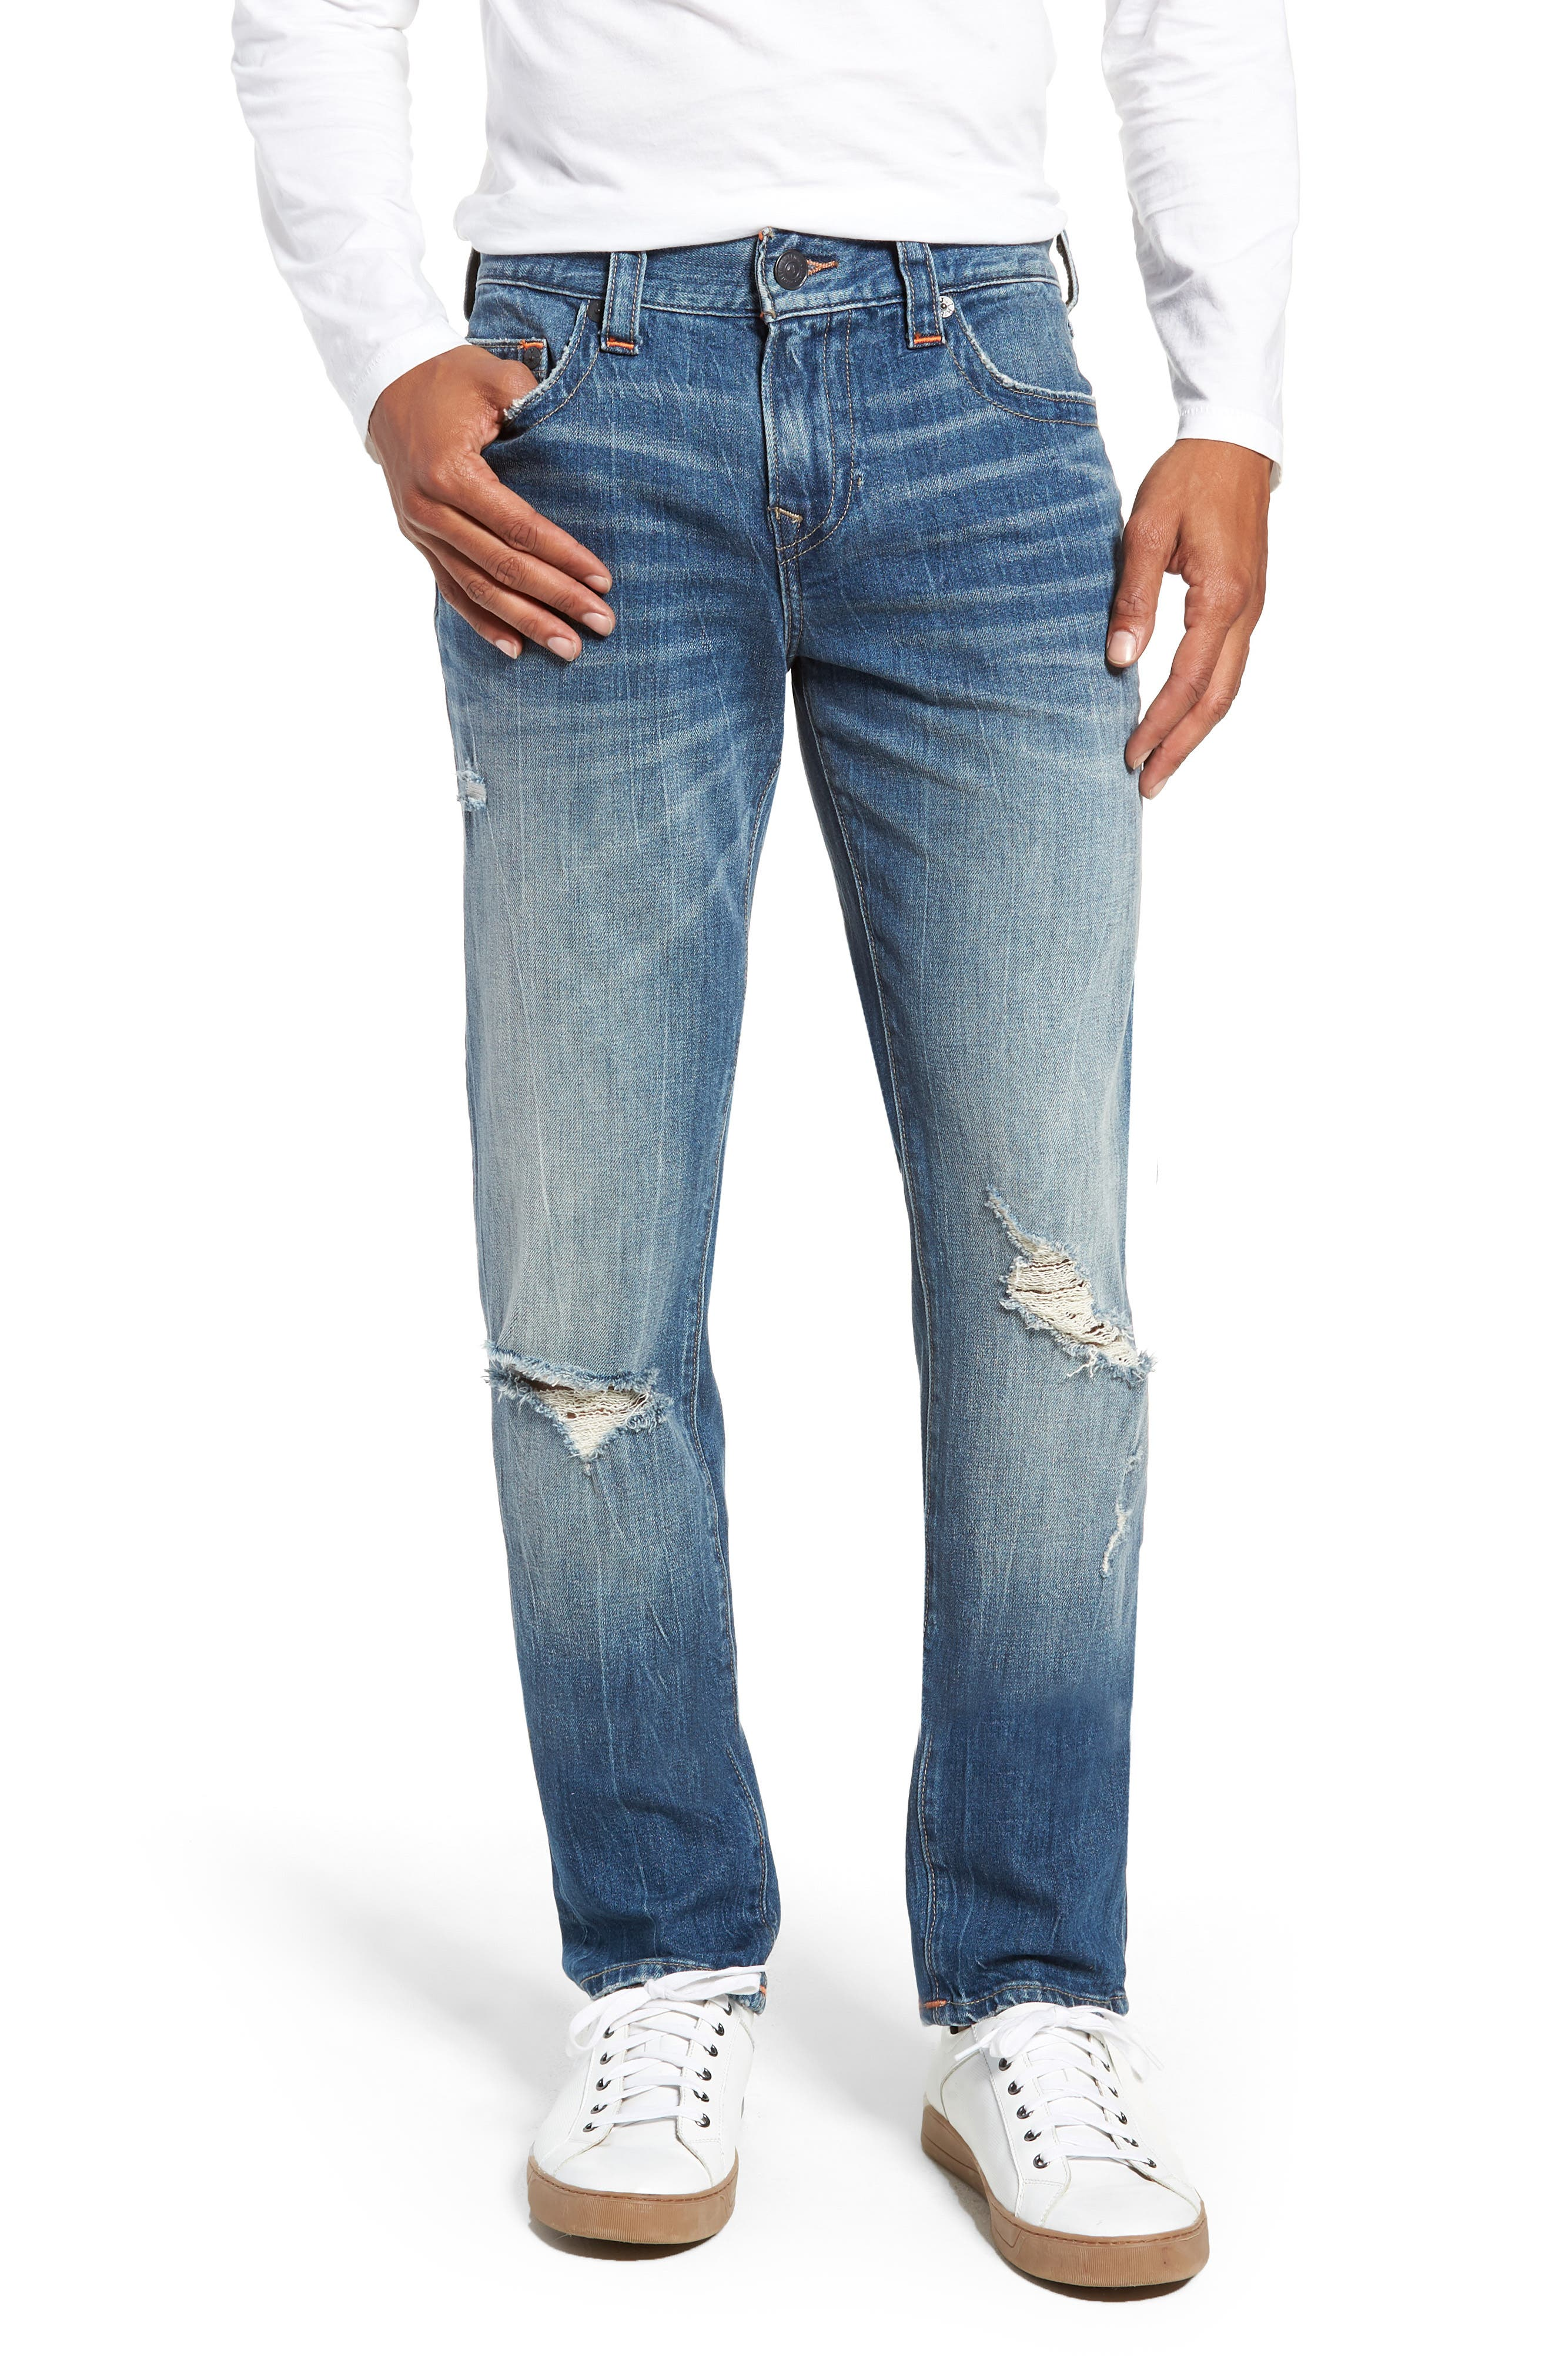 Rocco Skinny Fit Jeans,                         Main,                         color, WORN RAMPAGE